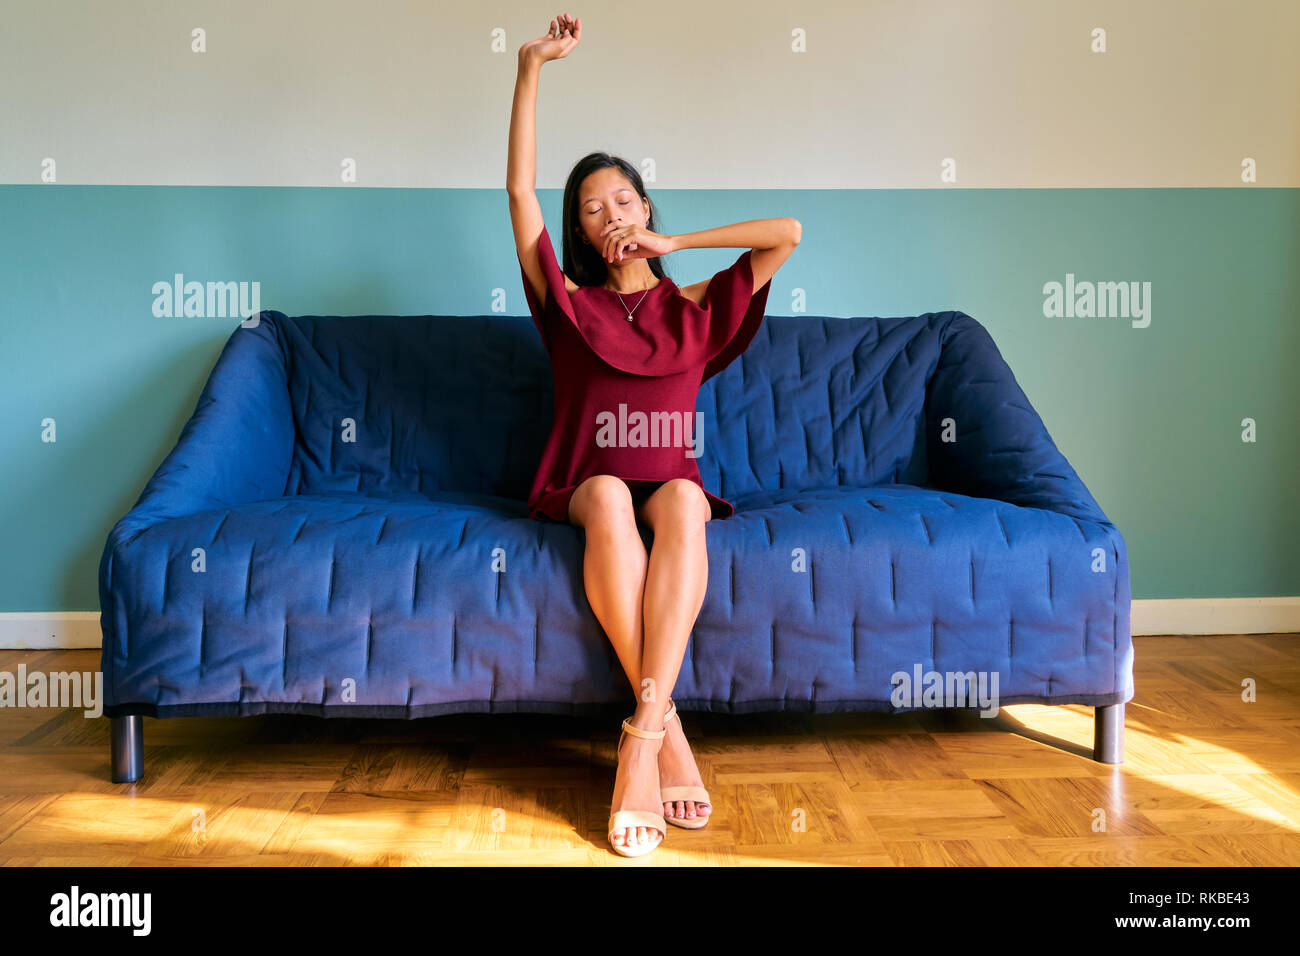 Beautiful woman posing - sleepy young woman and stretching - Stock Image